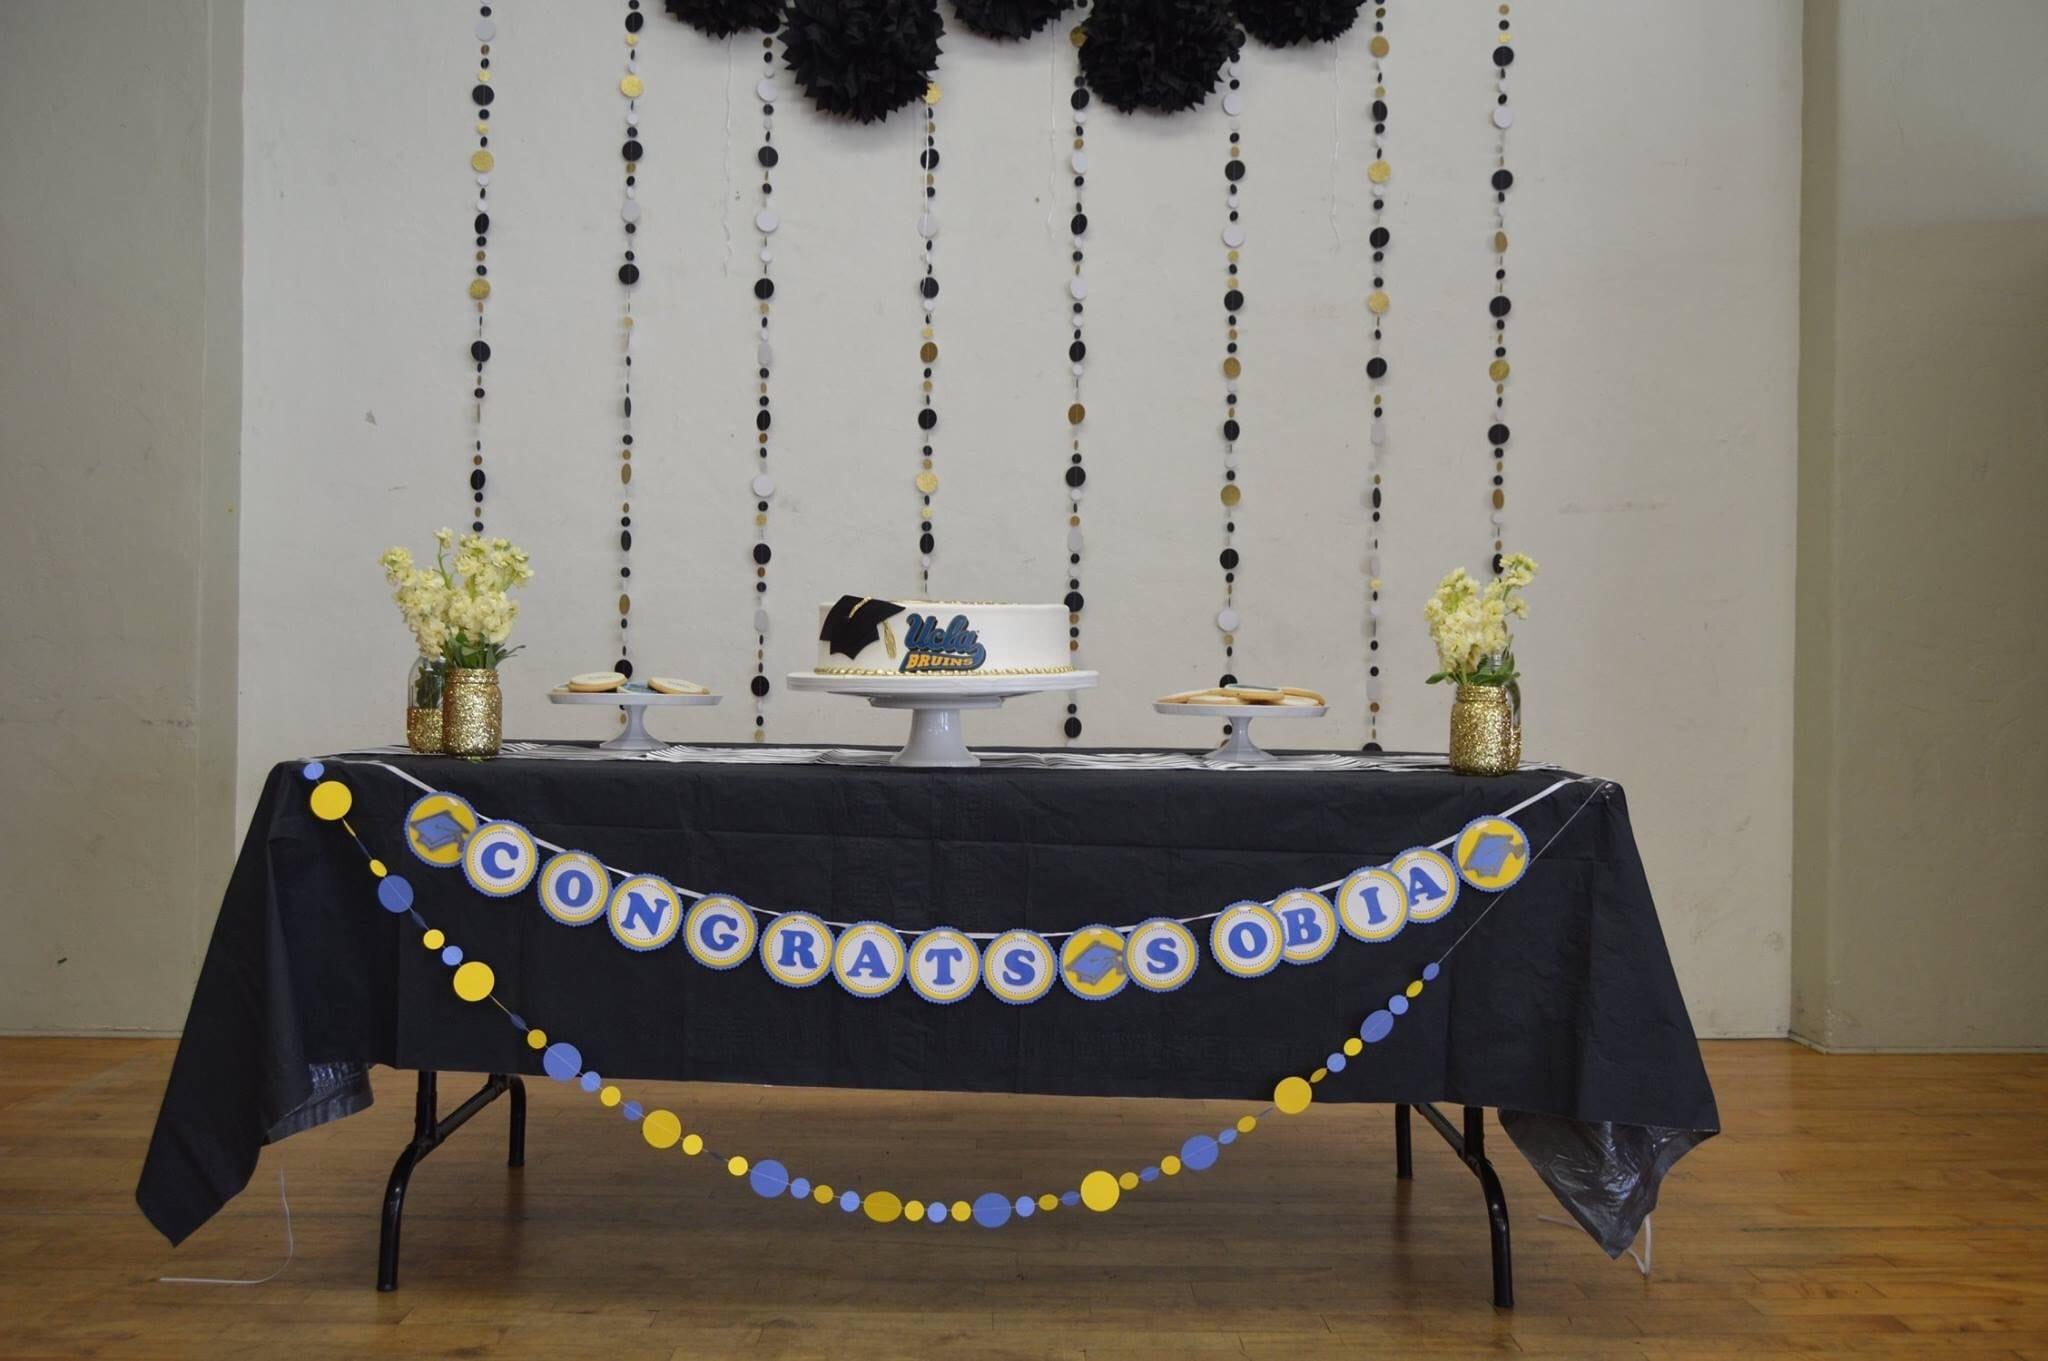 Congratulations banner with UCLA decor and gold and black glitter garlands